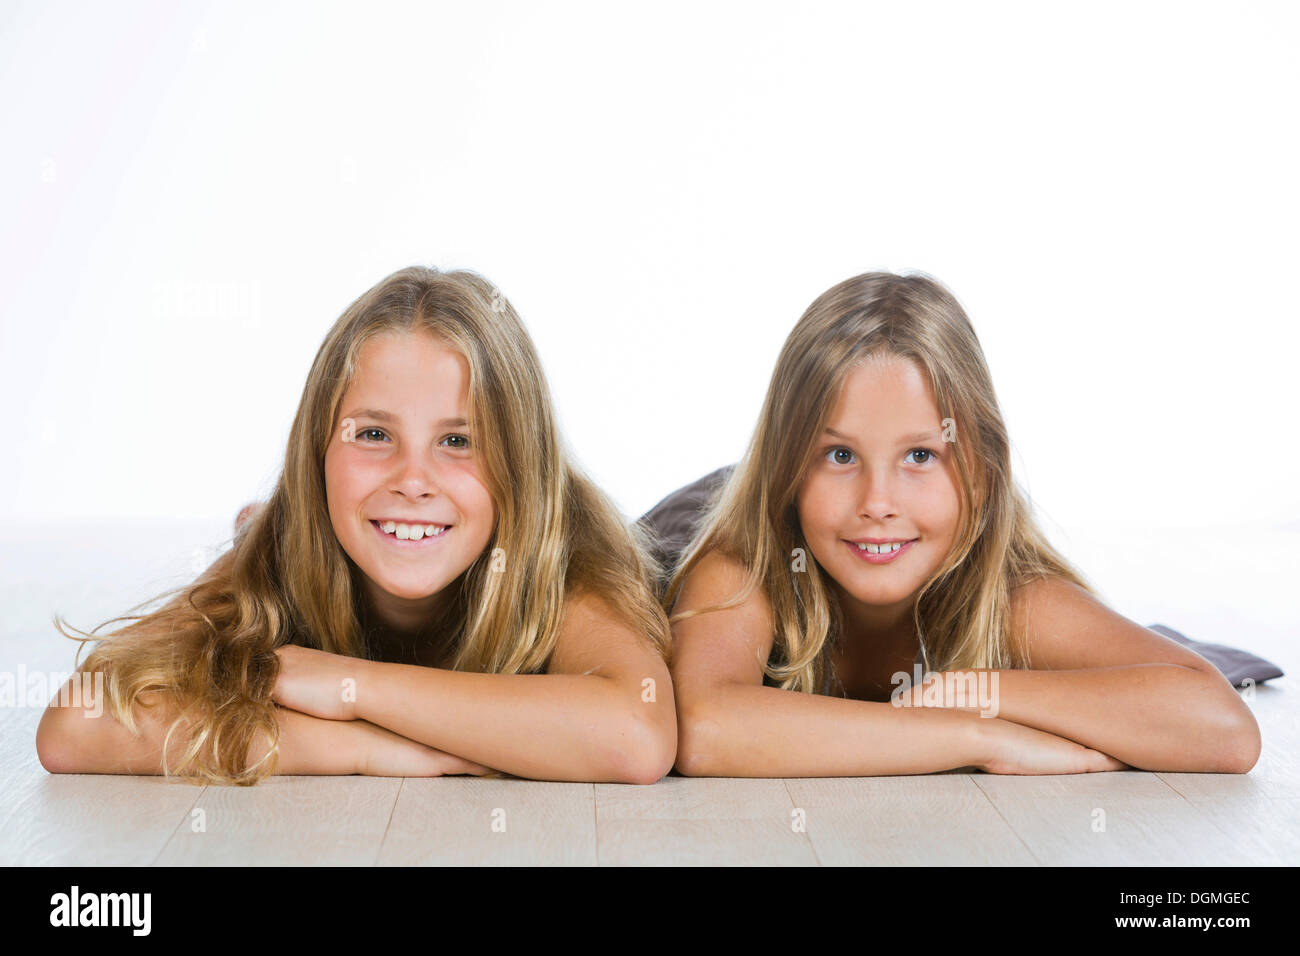 Twin girls, 9, lying on their bellies and smiling - Stock Image